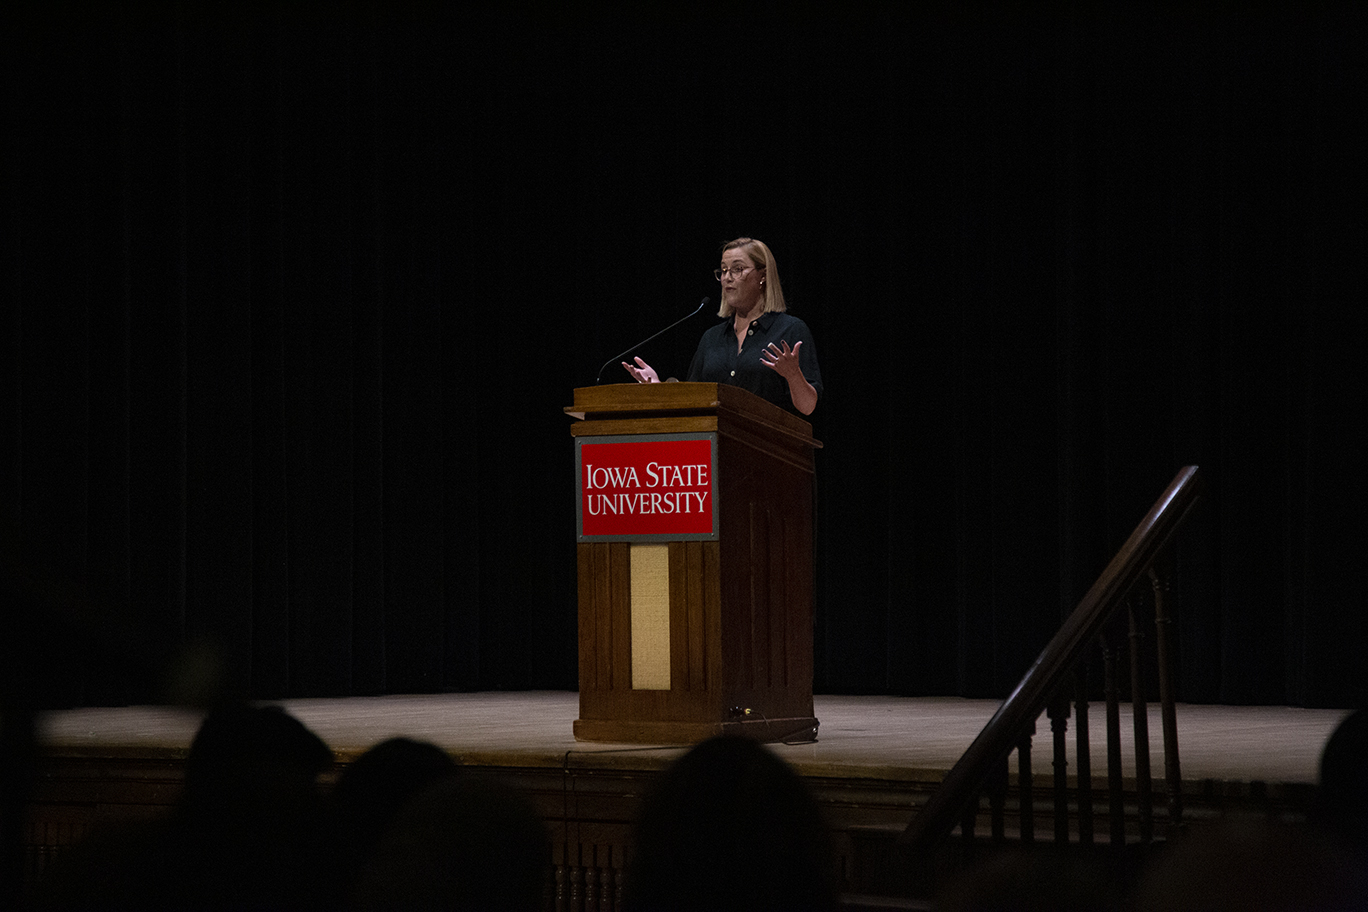 S.E. Cupp standing at the podium